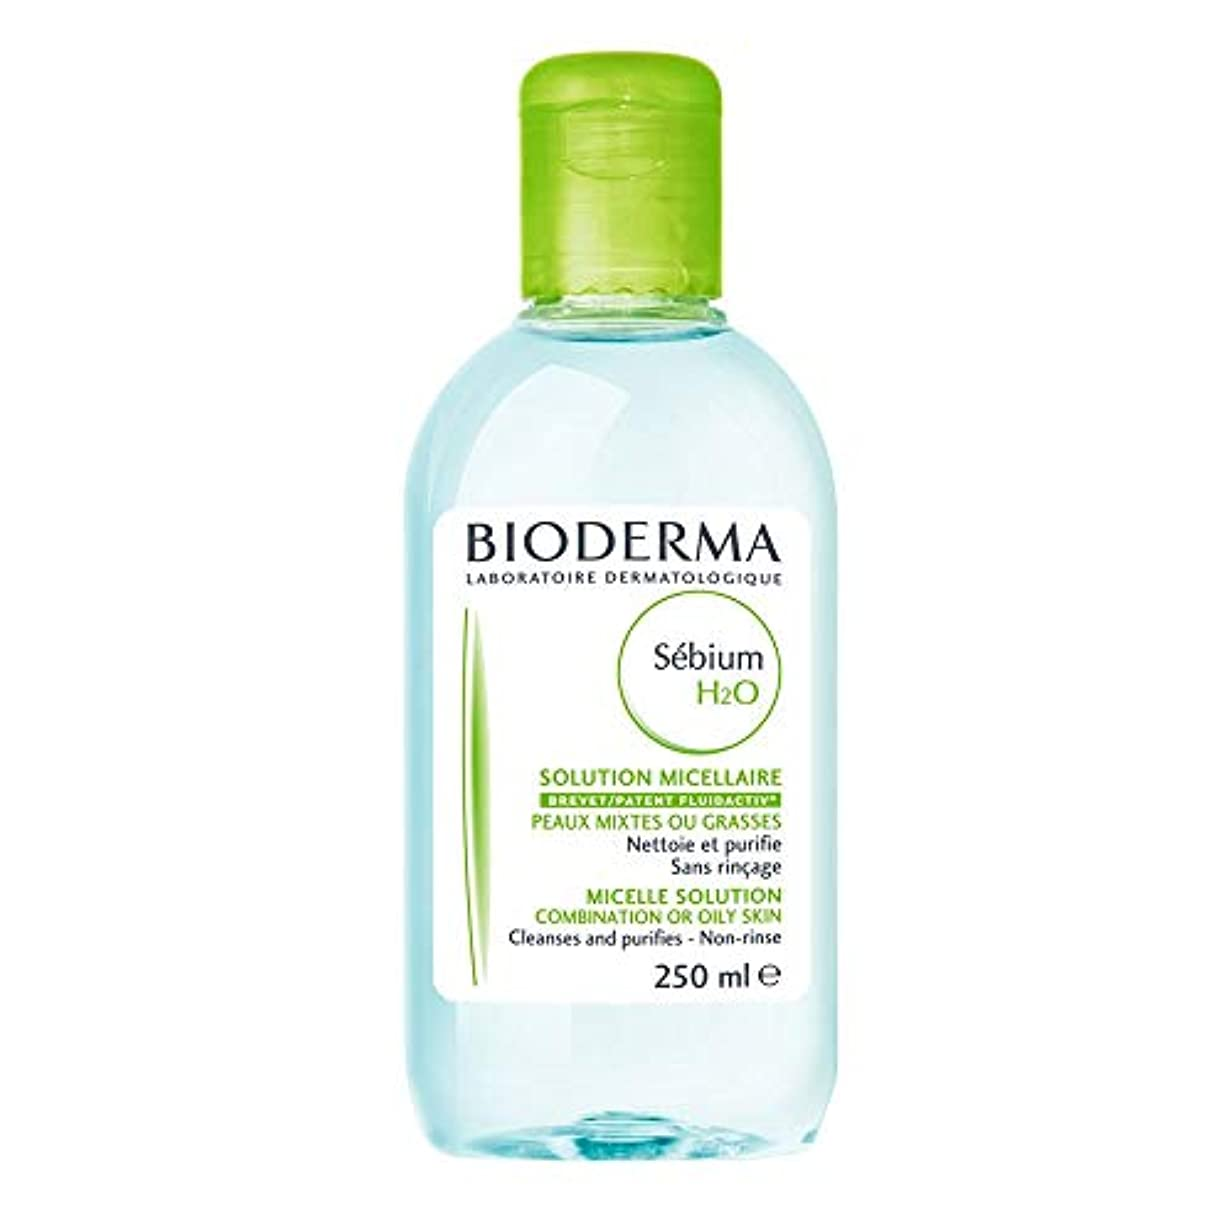 小麦粉焦がす磨かれたBioderma - Sebium H2O Purifying Cleansing Micelle Solution (250 ml) [並行輸入品]